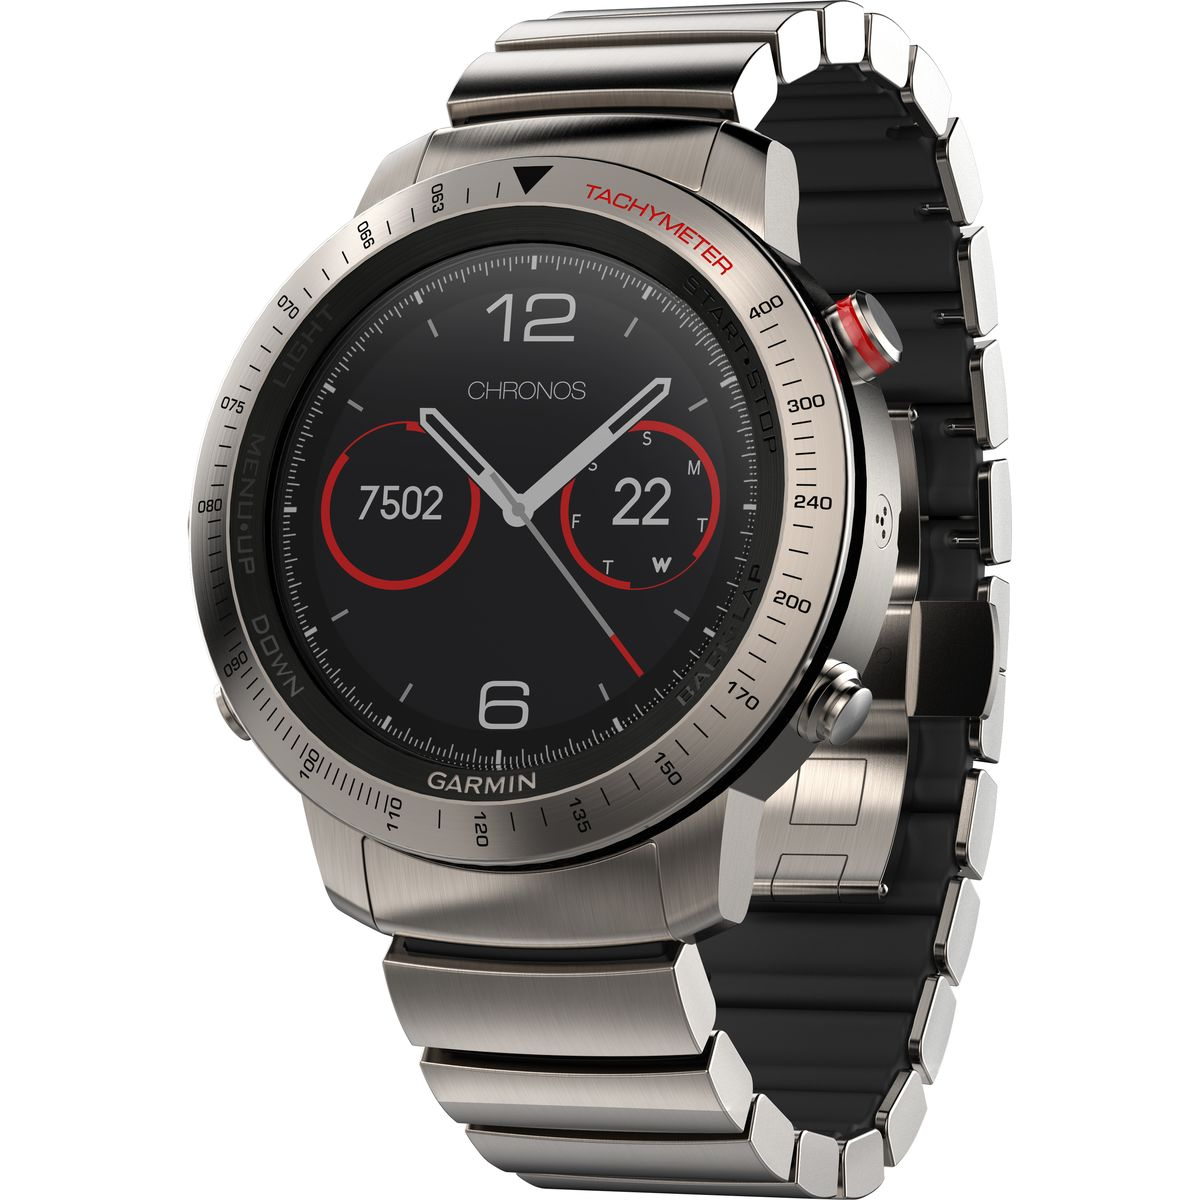 fenix sapphire watches multisport alton watch gps sports product garmin